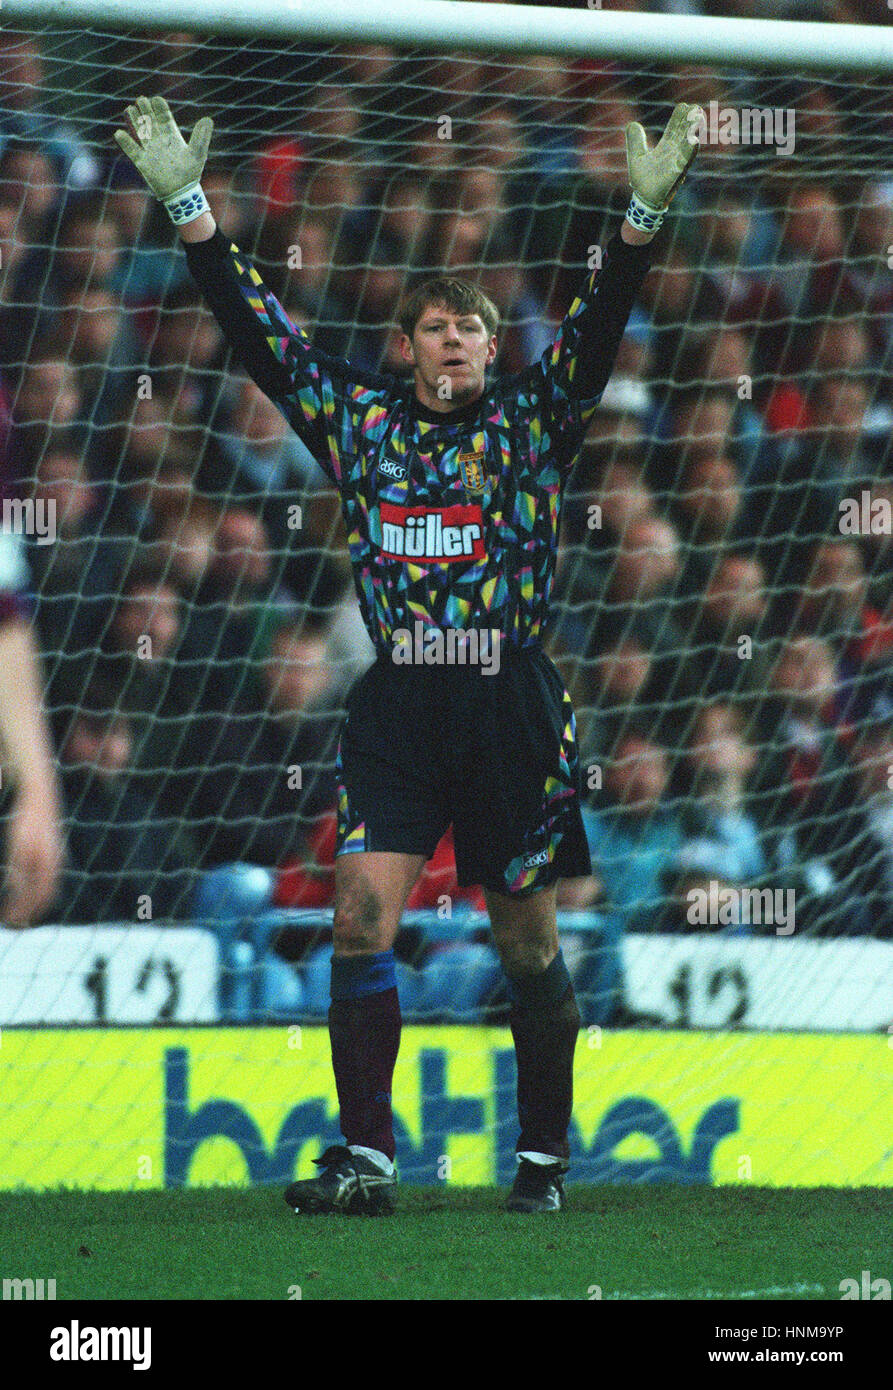 ab13a7ea6ff Nigel Spink Stock Photos & Nigel Spink Stock Images - Alamy